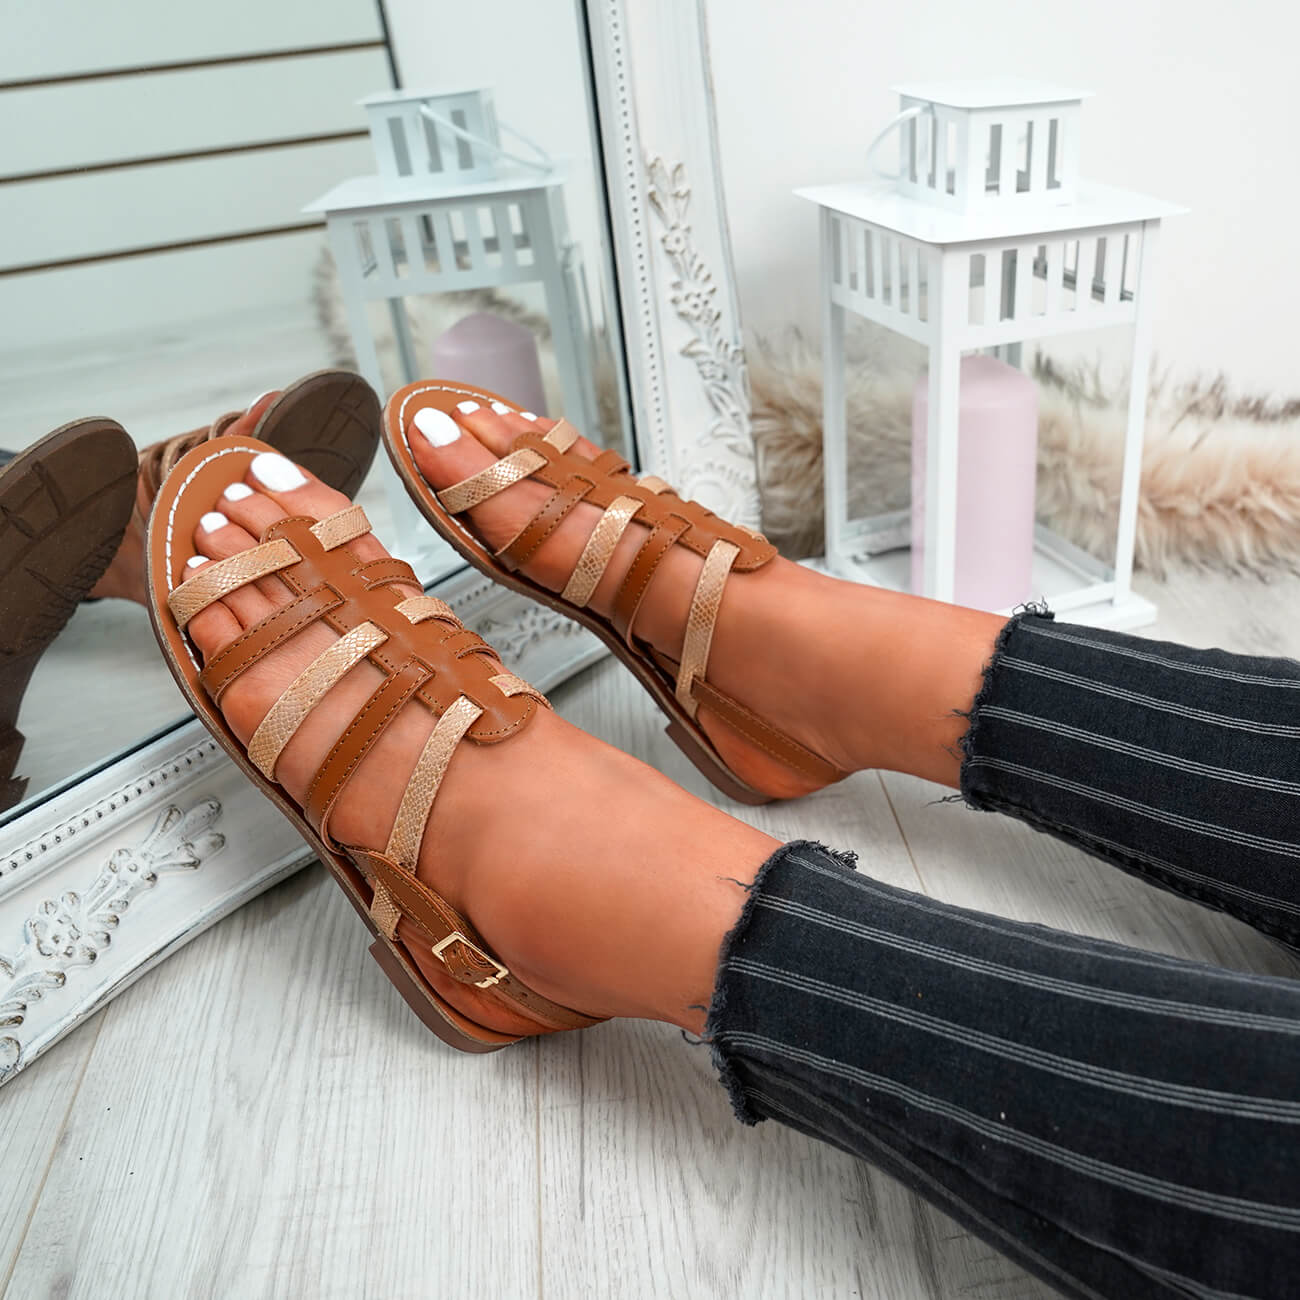 WOMENS-LADIES-BUCKLE-STRAP-FLAT-SUMMER-SANDALS-CASUAL-HOLIDAY-COMFY-SHOES-SIZE thumbnail 13